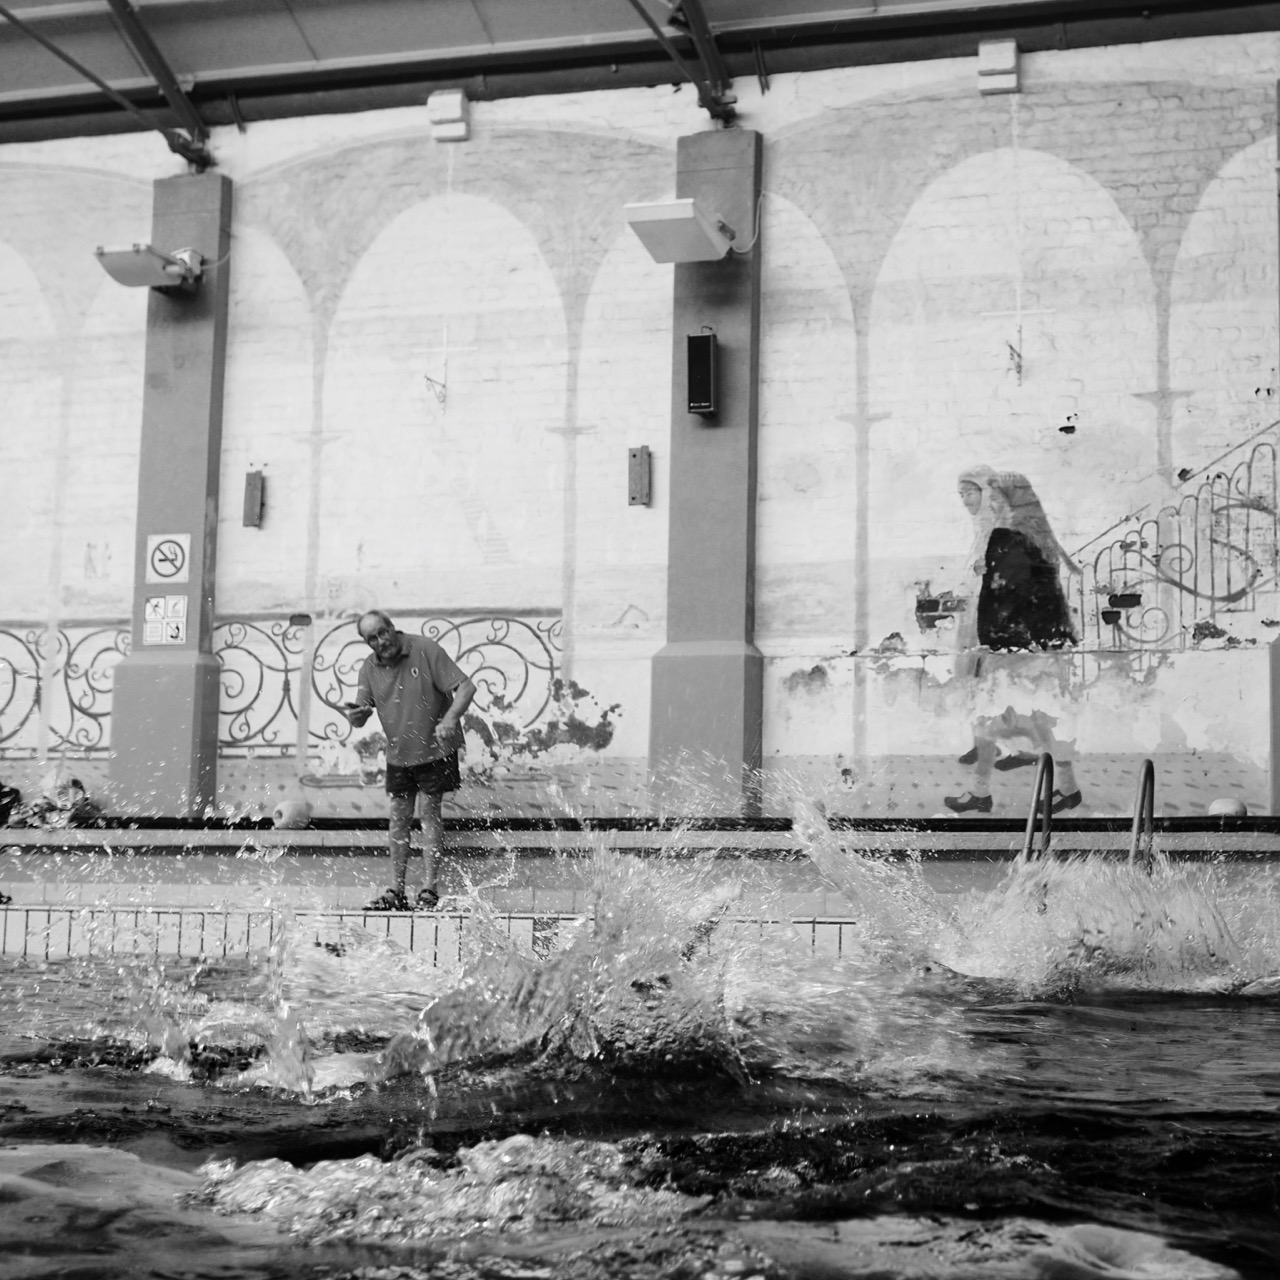 Long Street Baths